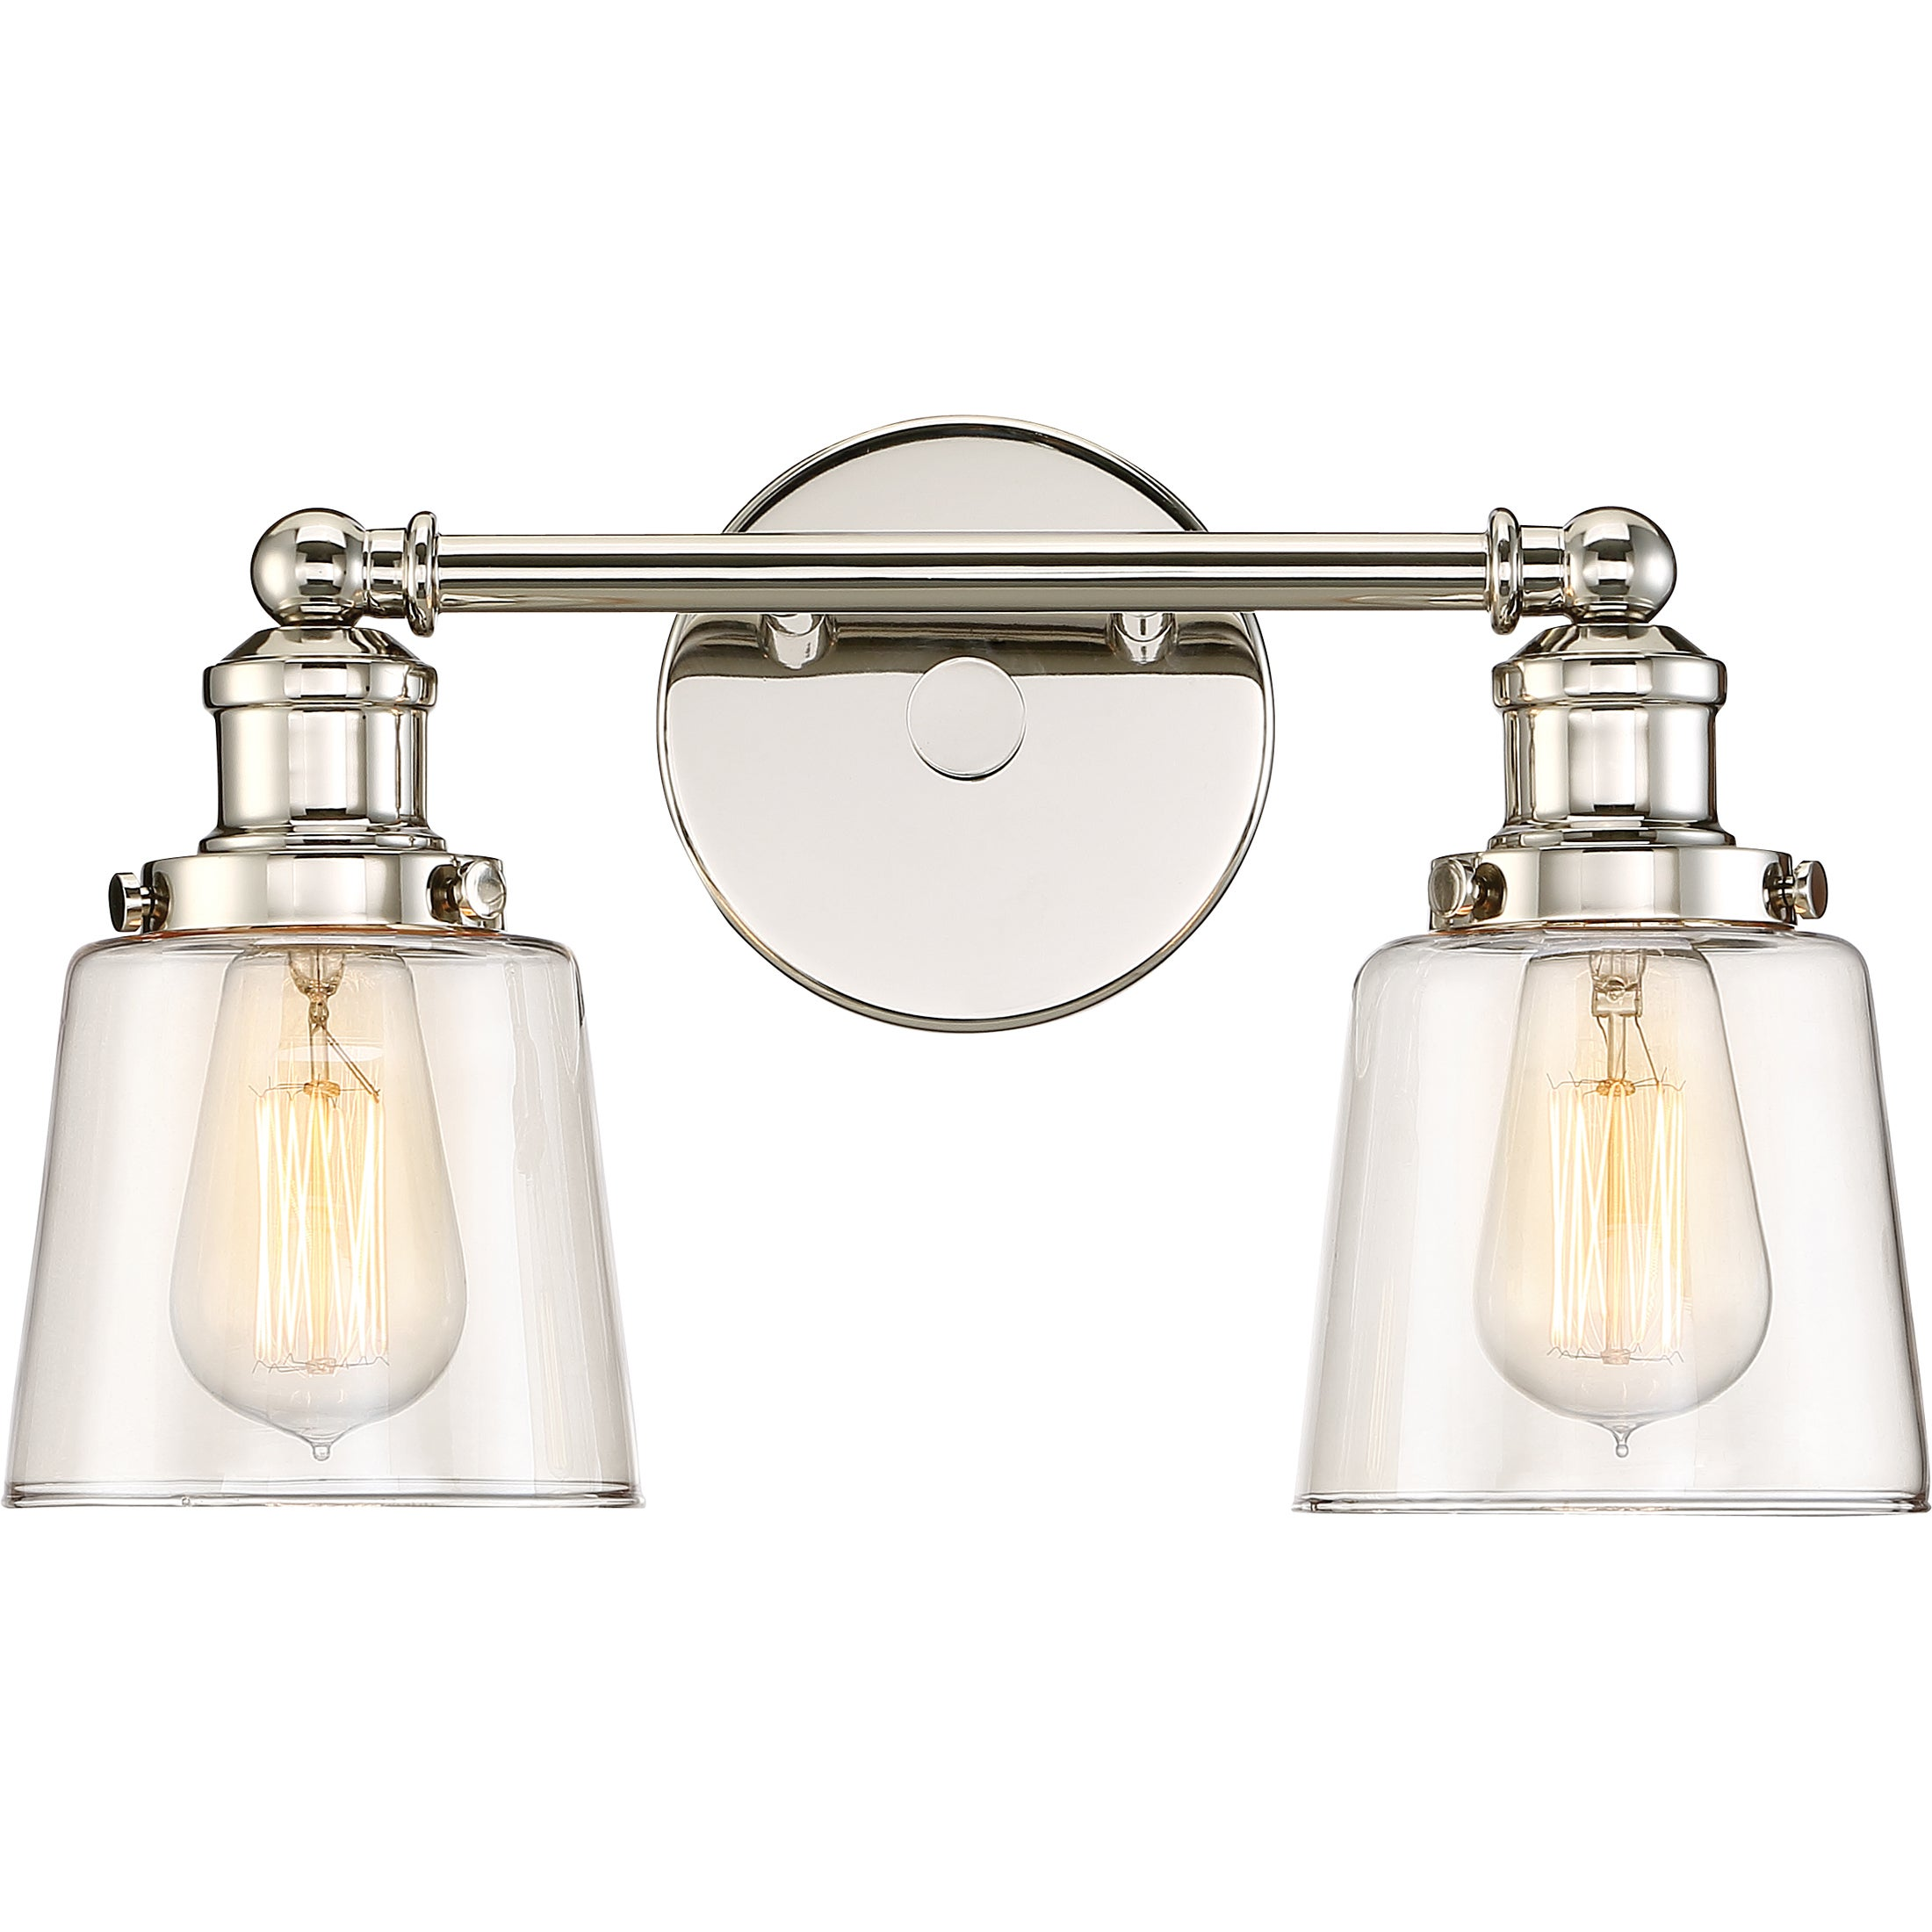 Quoizel Union Nickel Steel 2 Light Bath Fixture